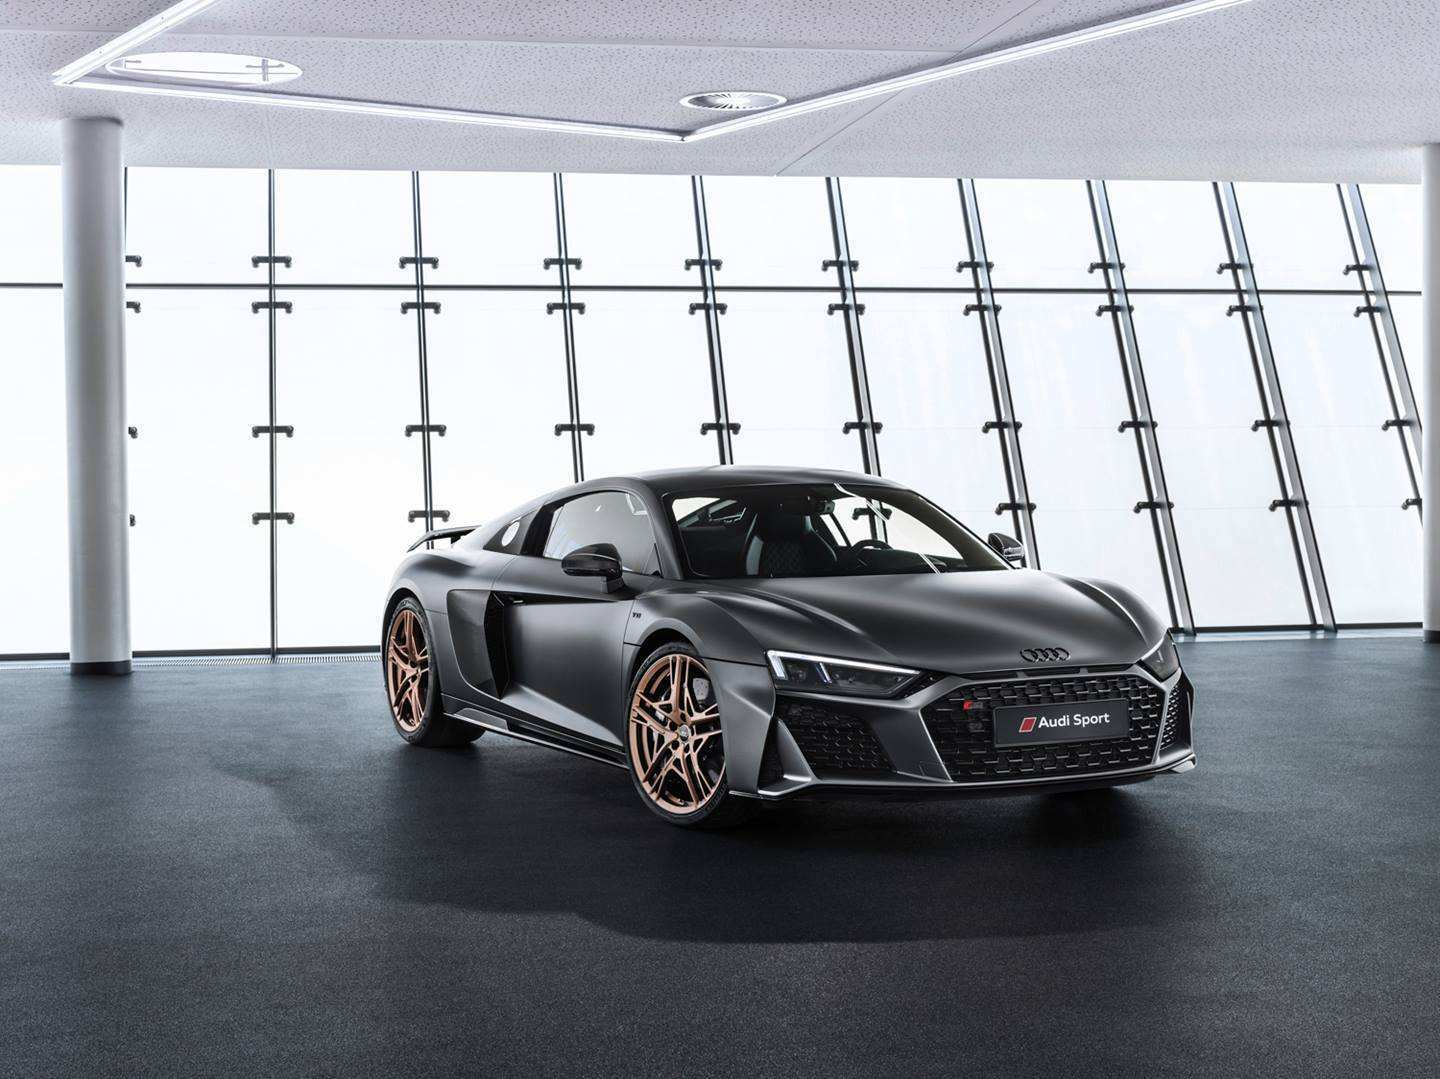 91 The Best 2020 Audi R8 Picture